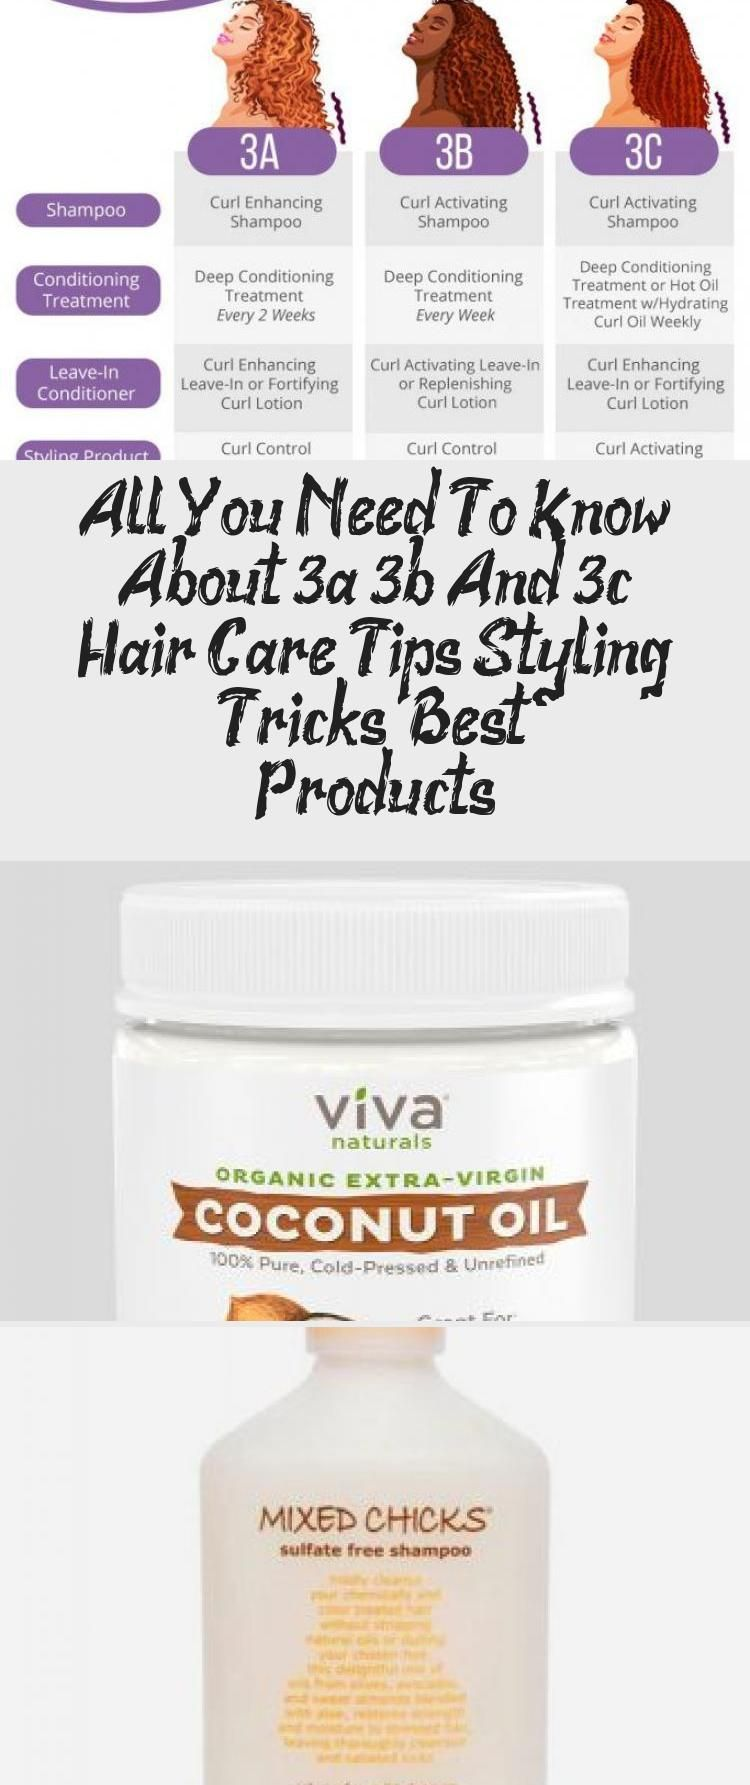 All You Need To Know About 3a 3b And 3c Hair Care Tips Styling